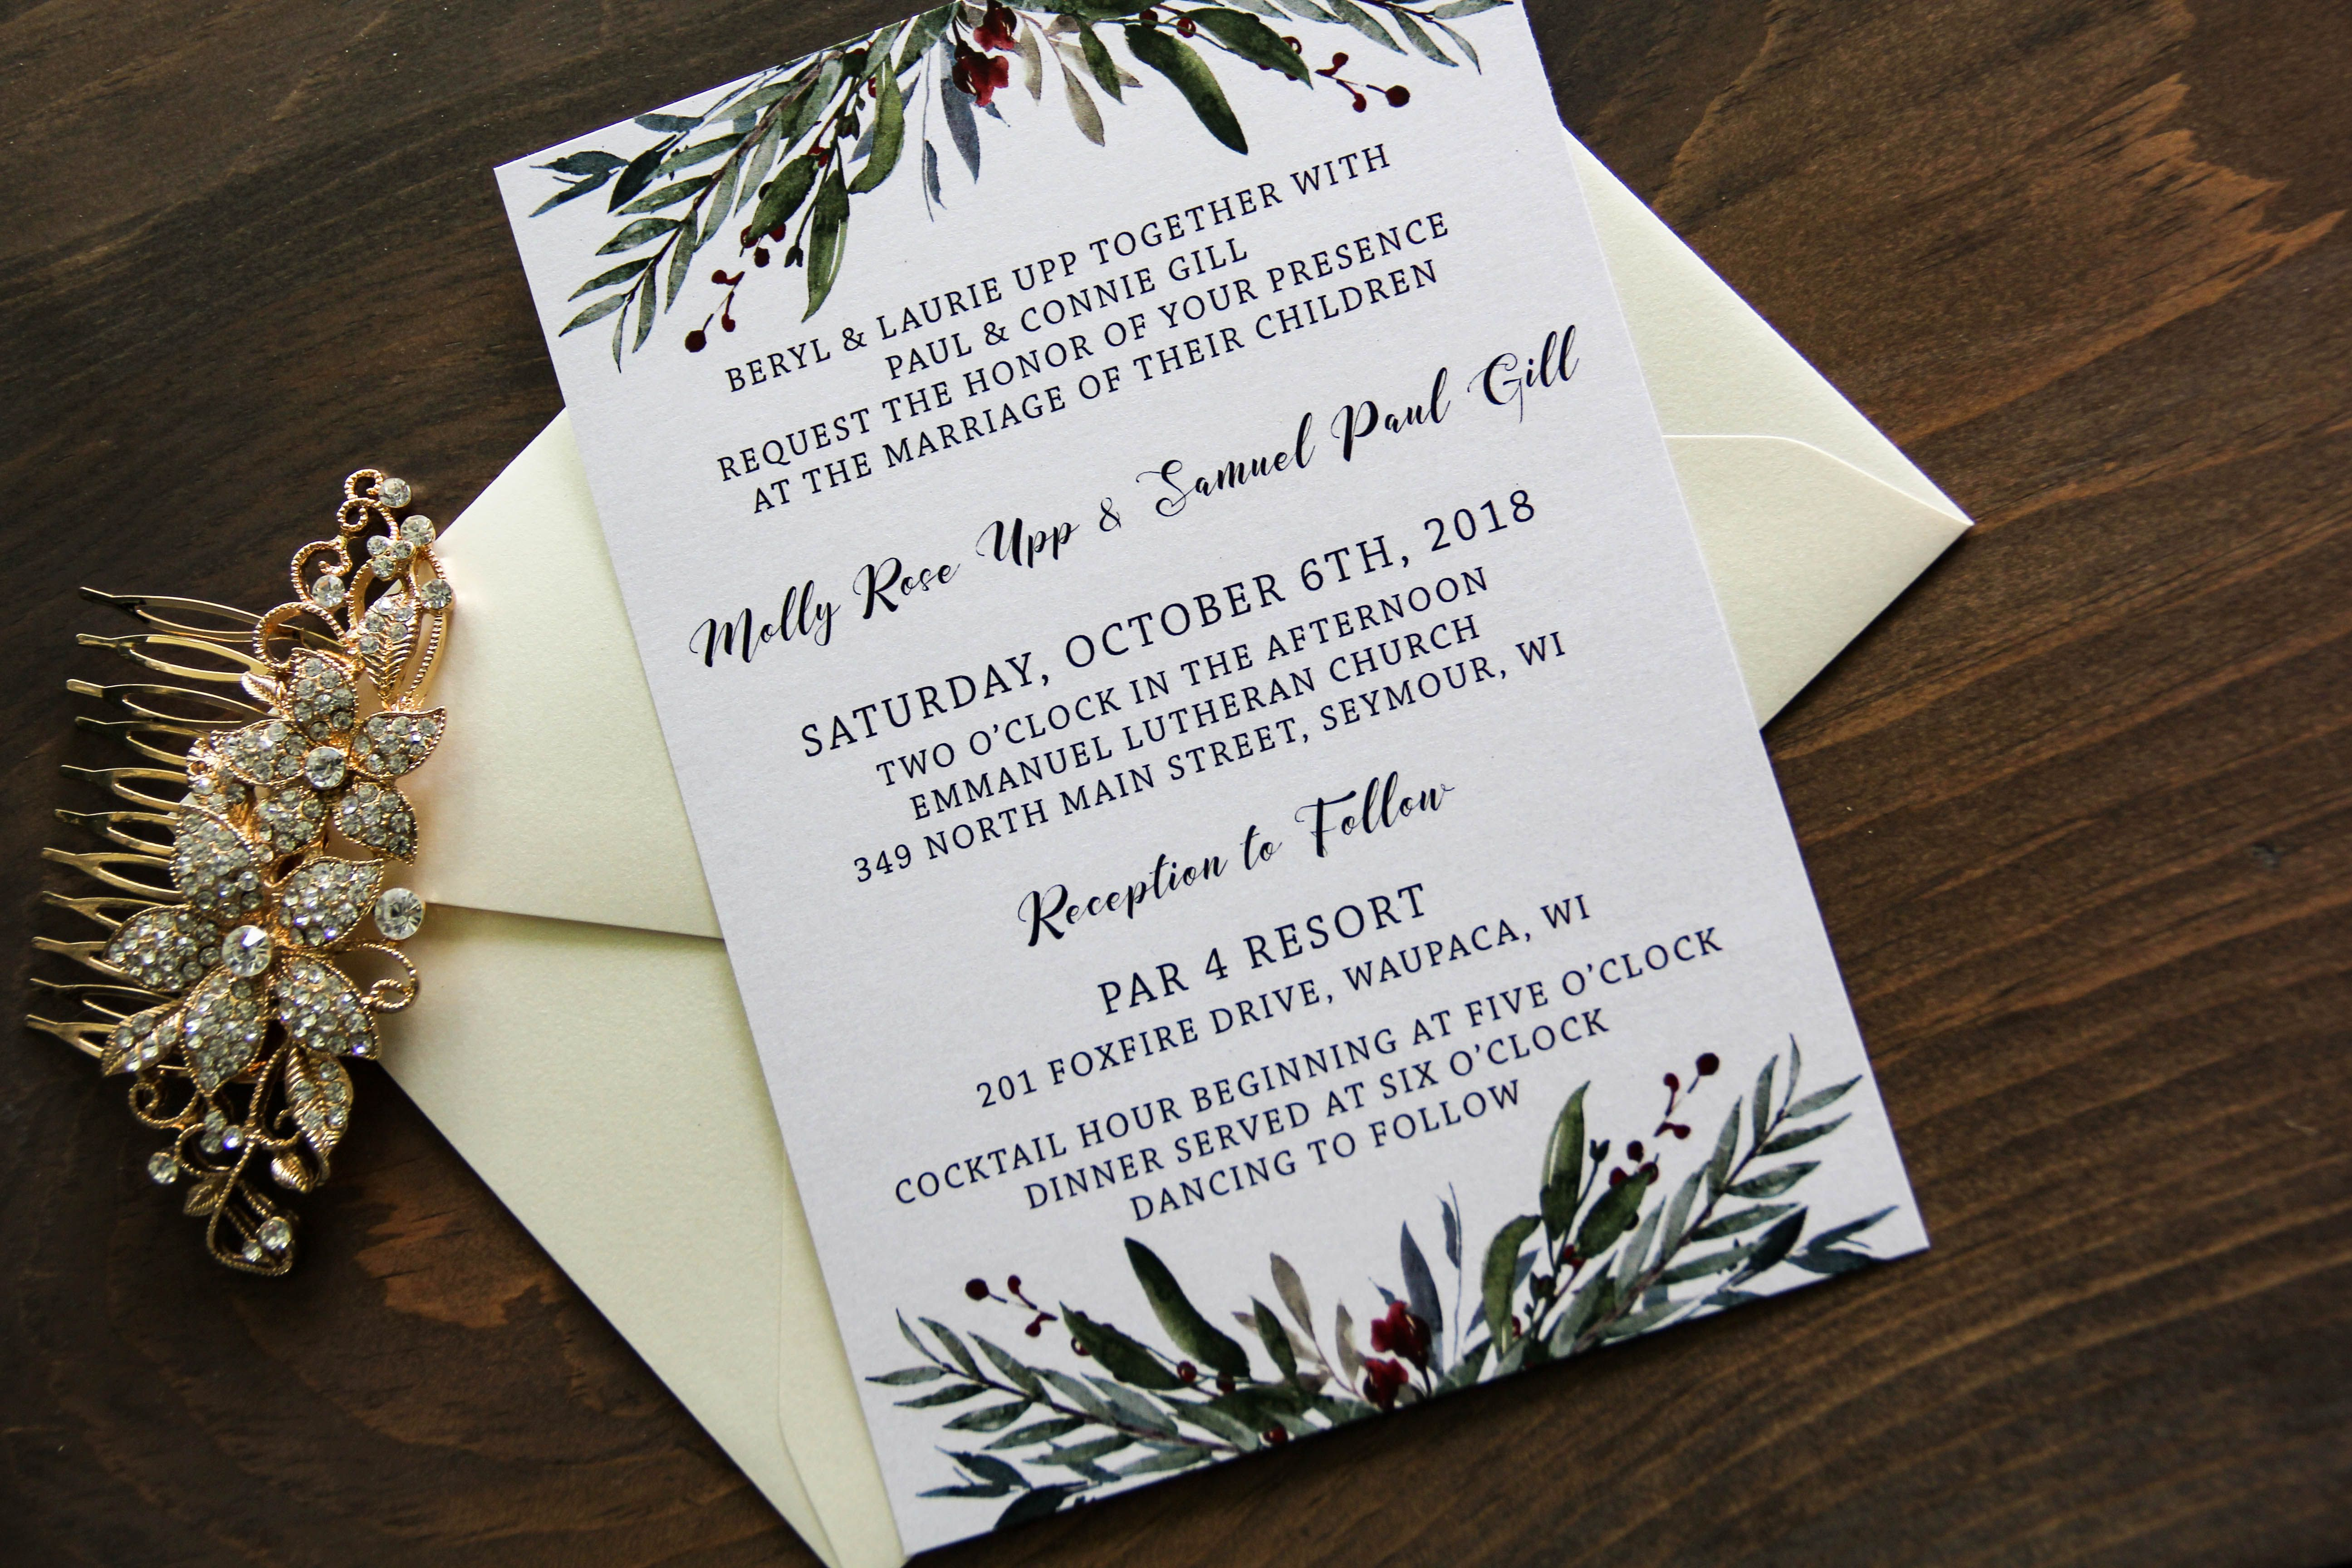 Wedding decorations red october 2018 Winter Berry Wedding Invitation Simple greens with red berry